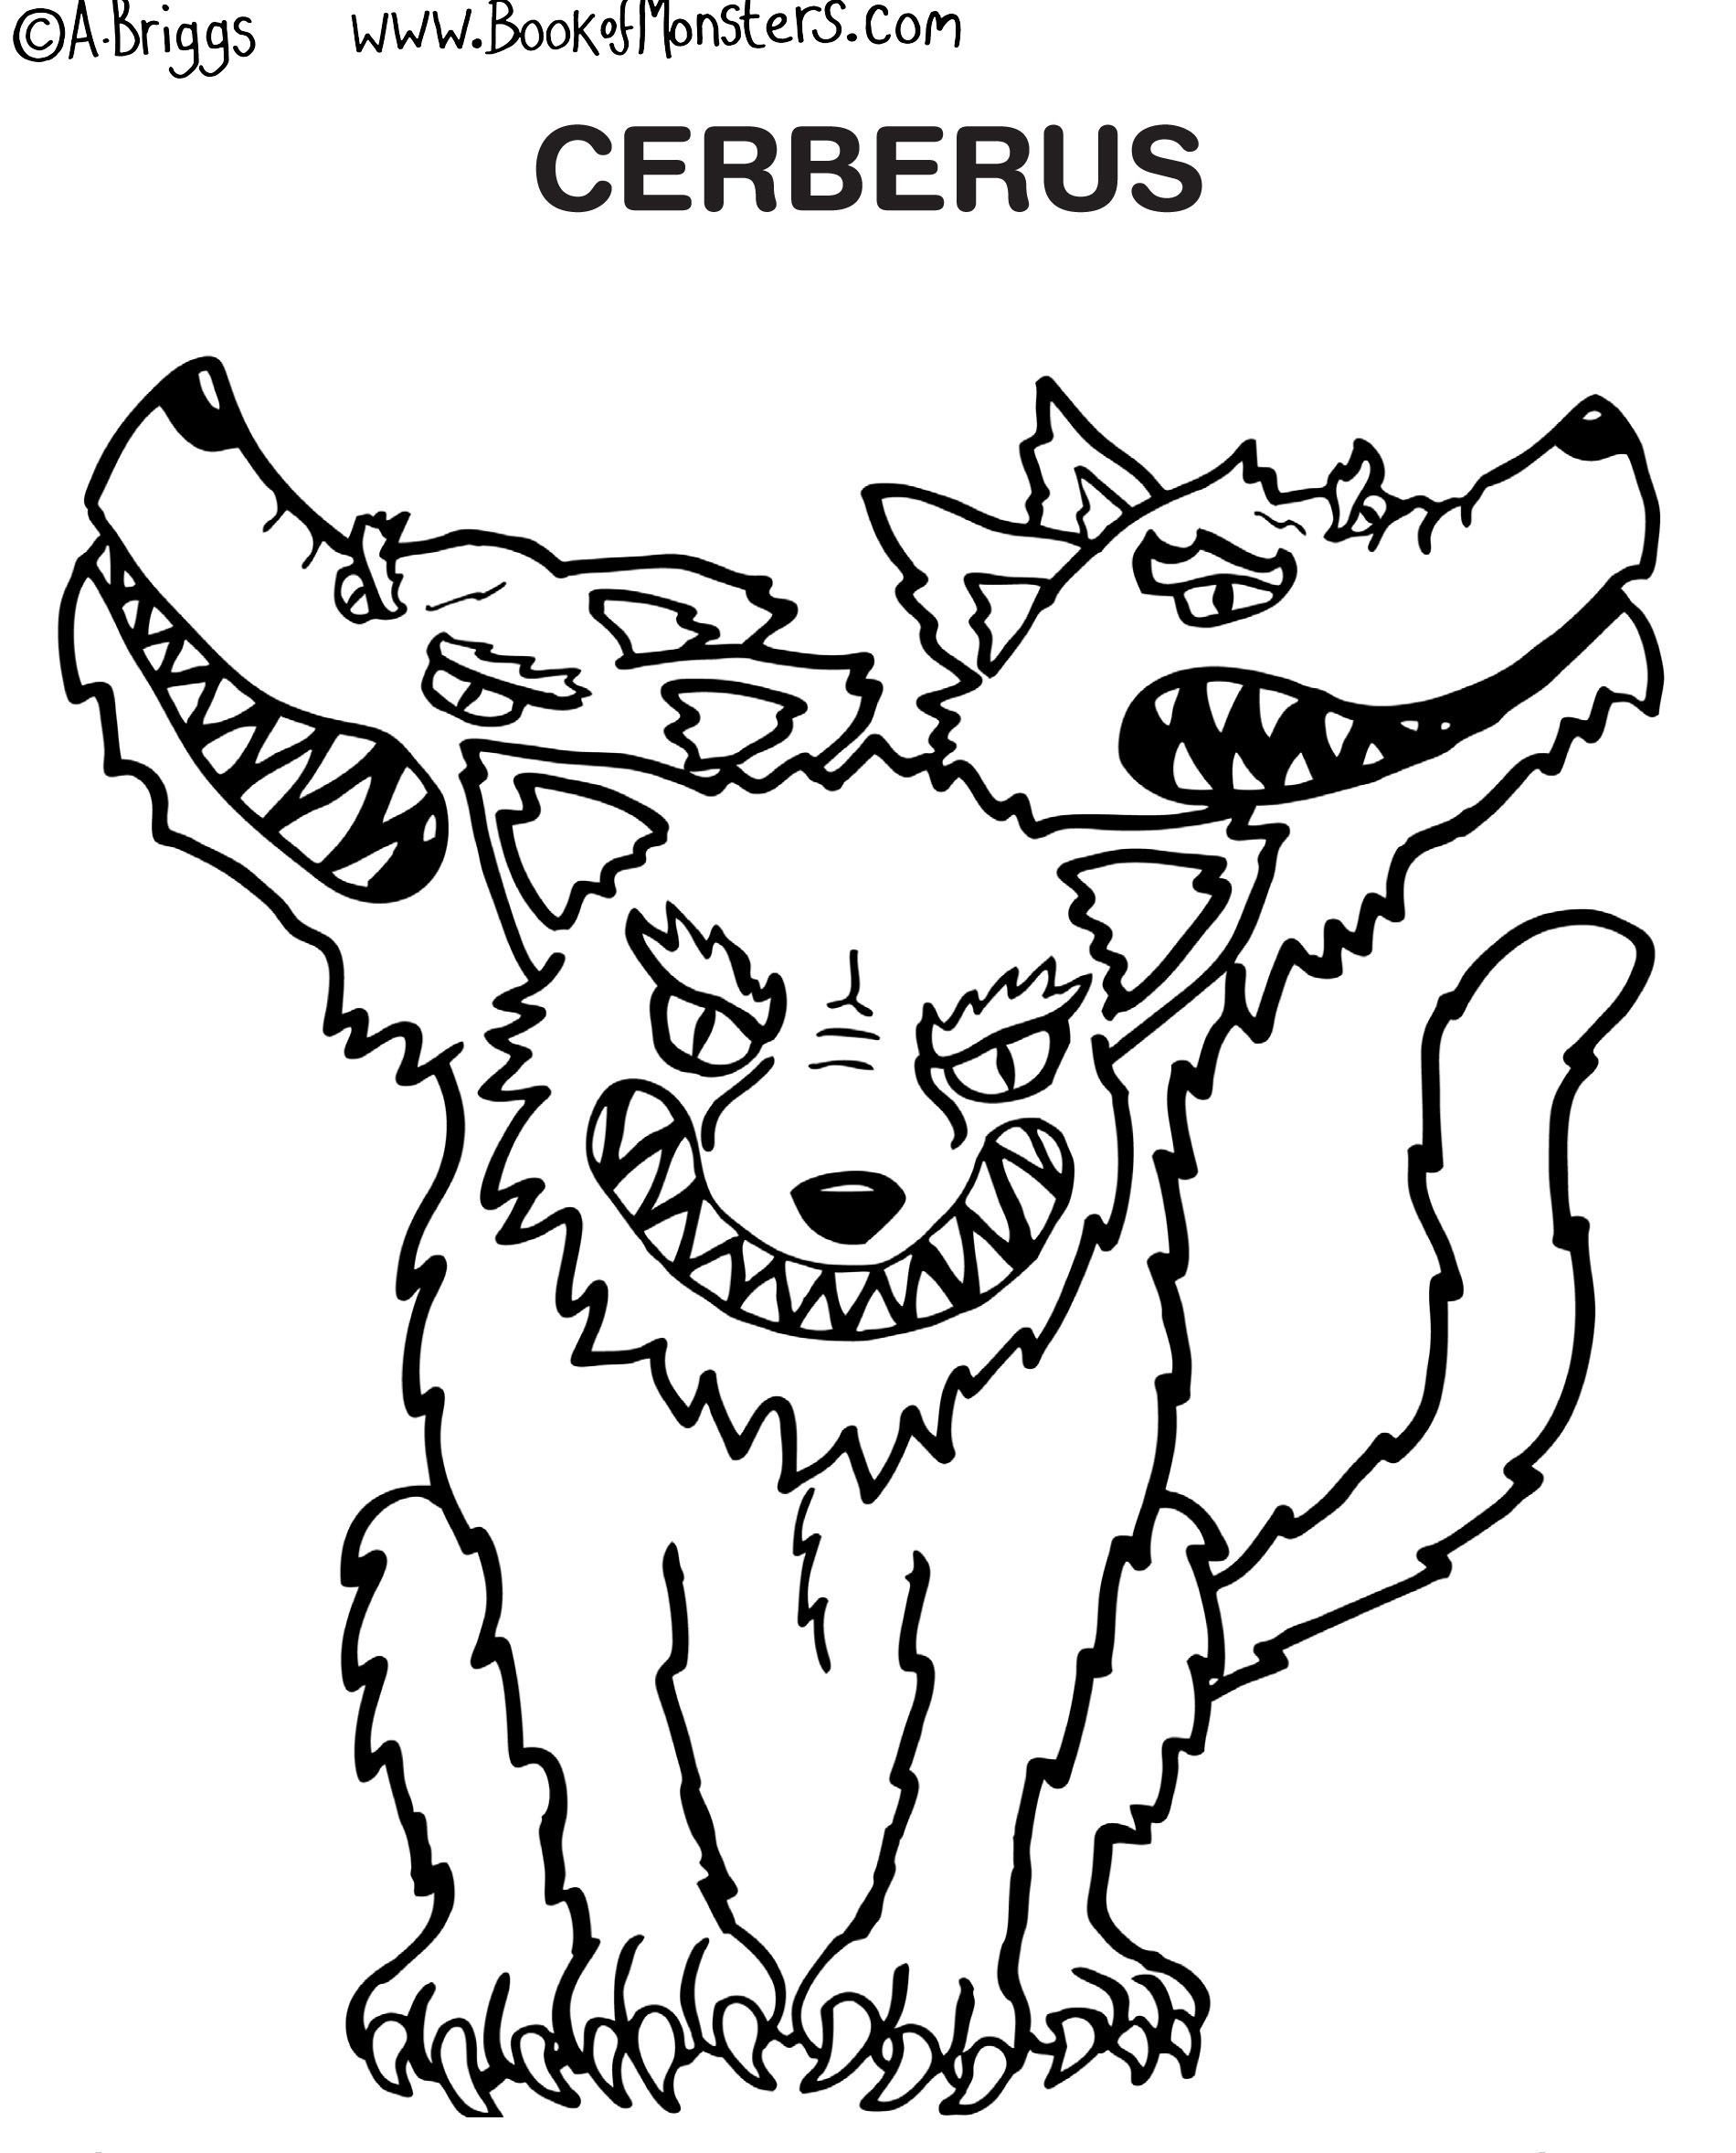 book of monsters coloring page for kids cerberus greek mythology